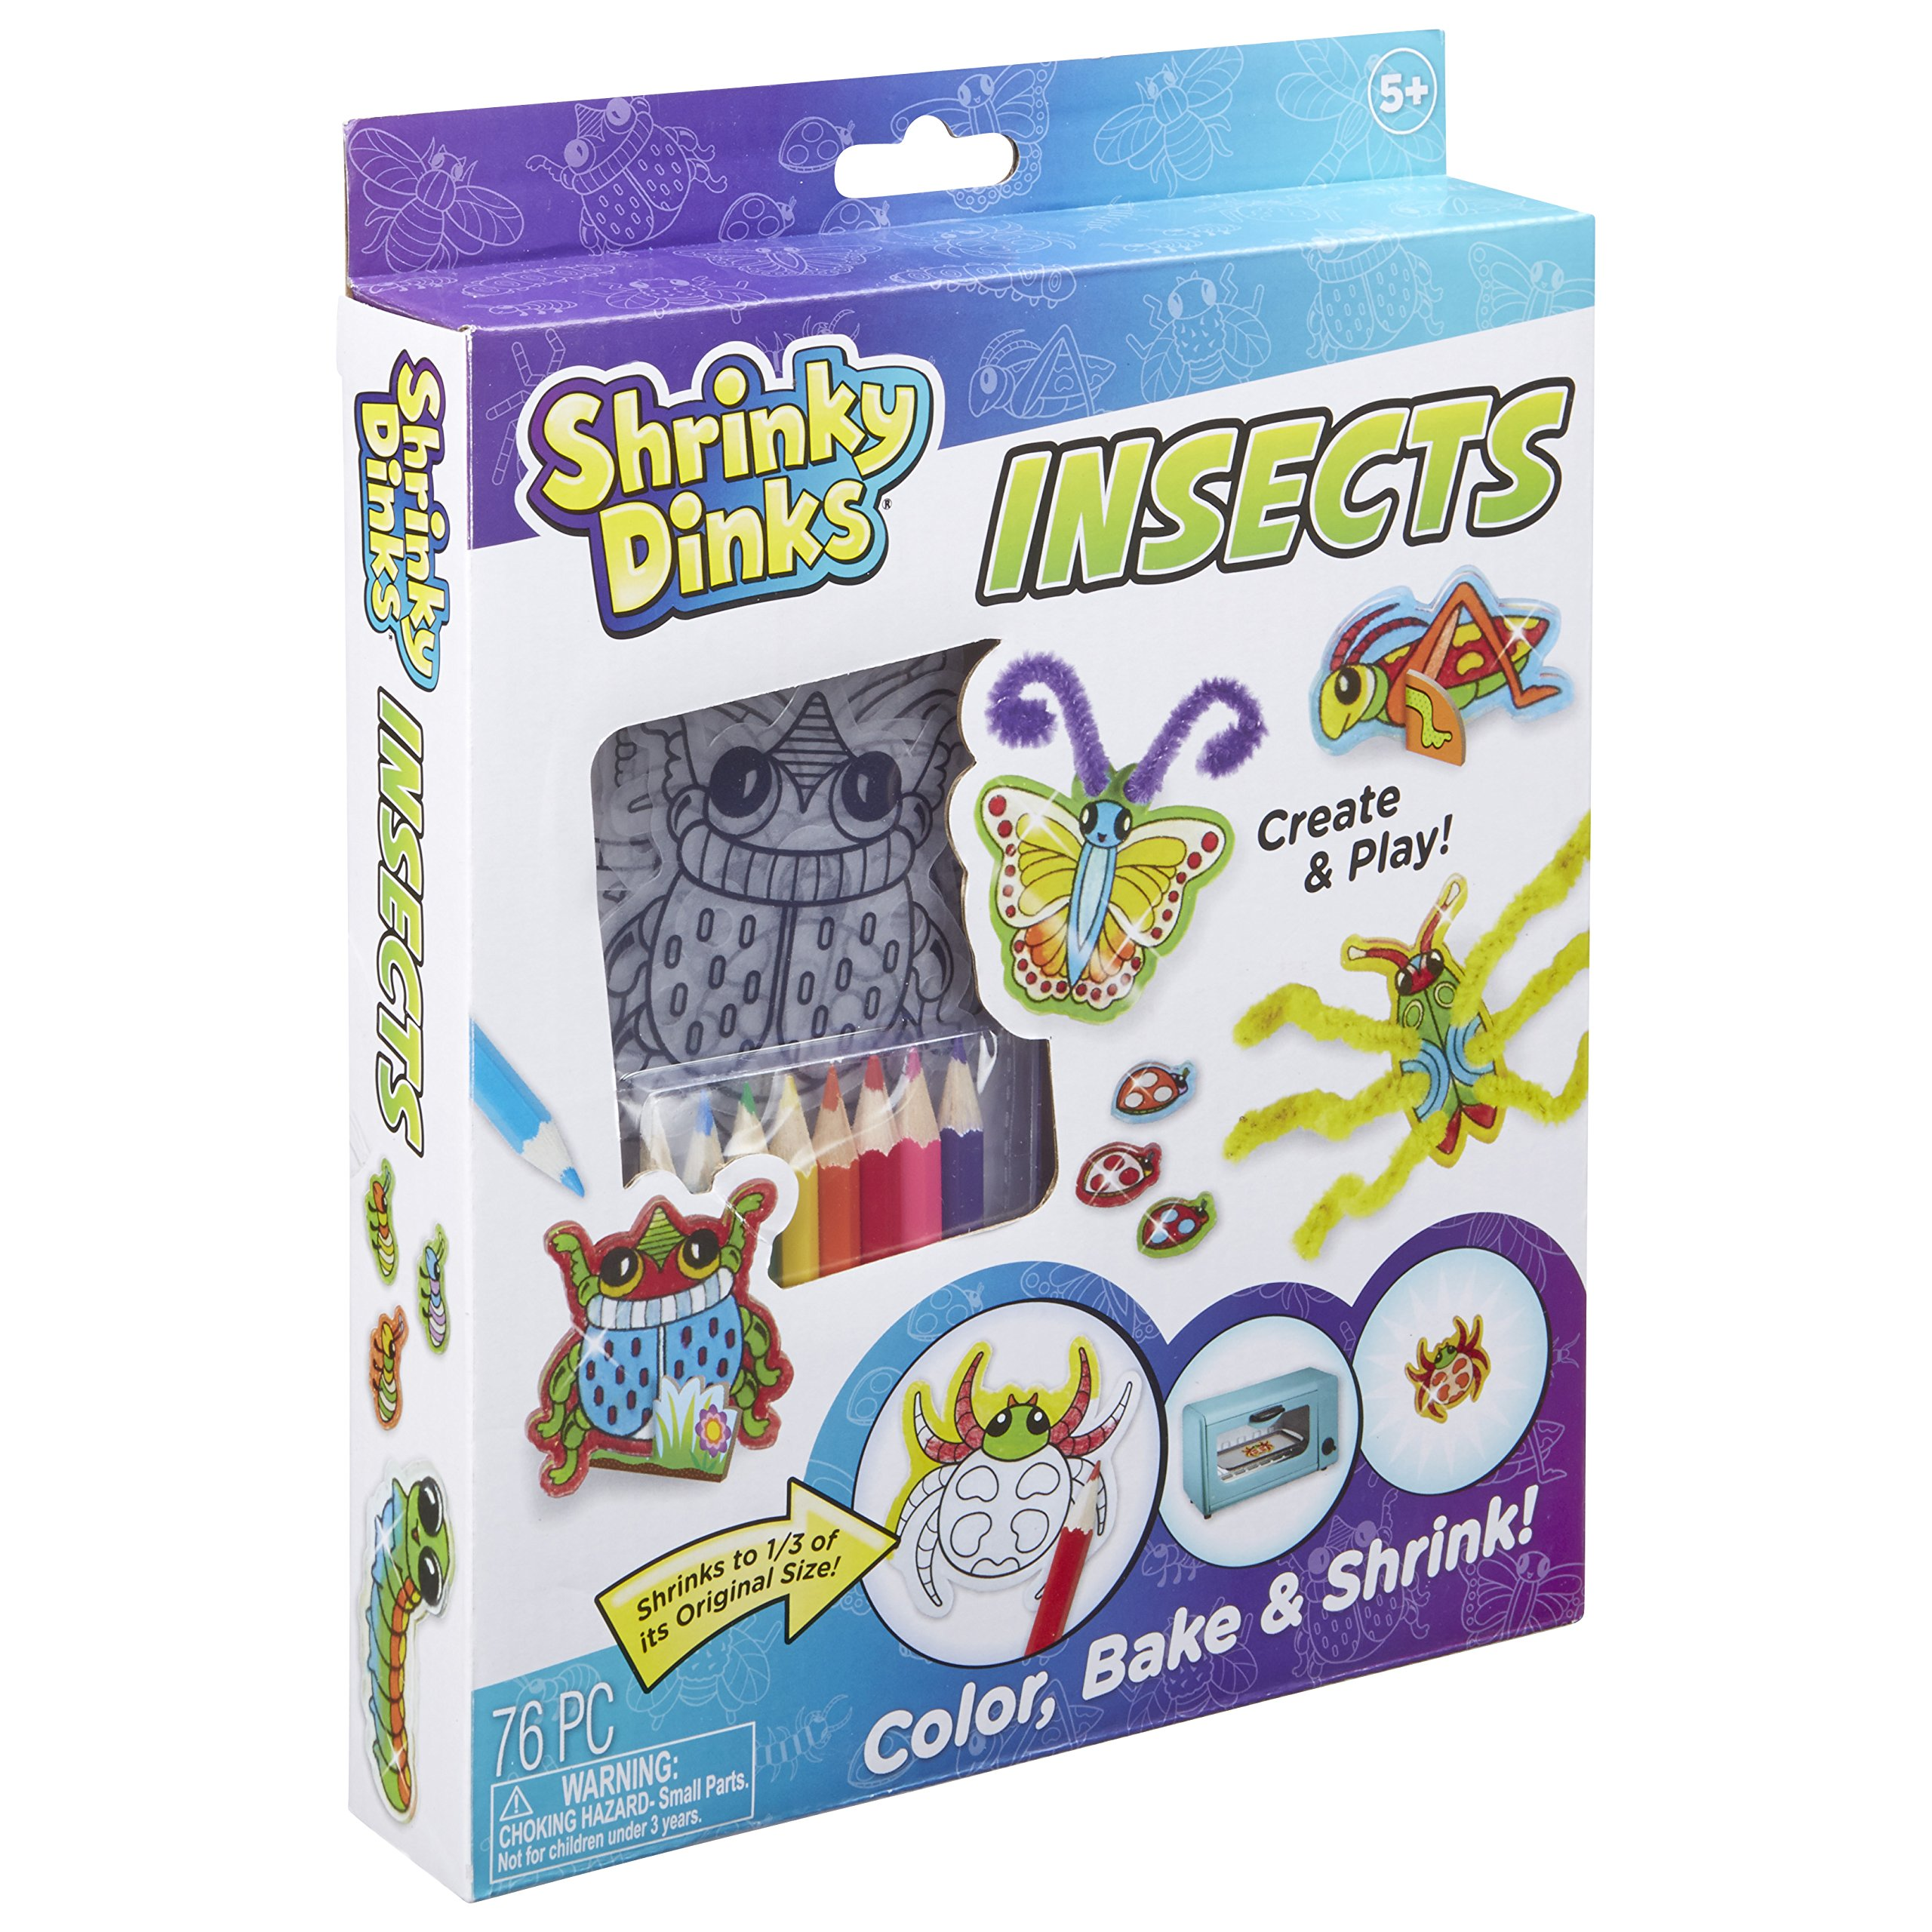 Shrinky Dinks Insects Activity Set Kids Art and Craft Activity